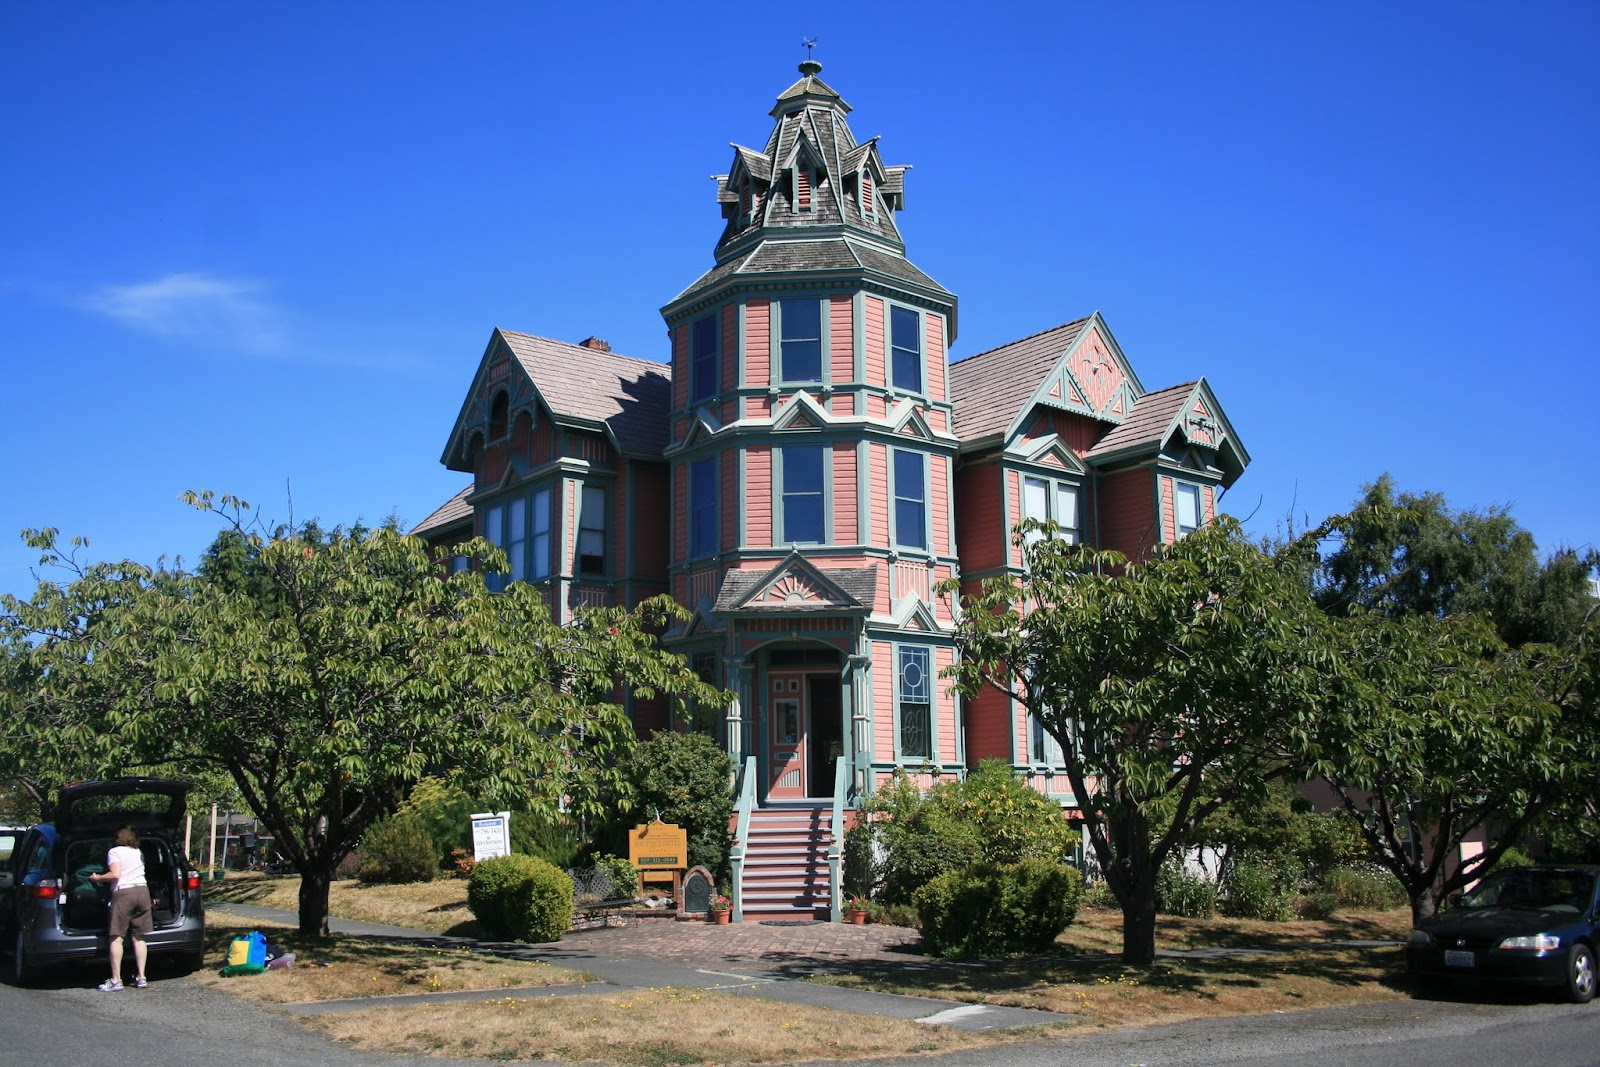 port townsend senior dating site The port townsend, wa senior guide provides local senior living and  overall,  0% of port townsend senior households do not have access to phone service.